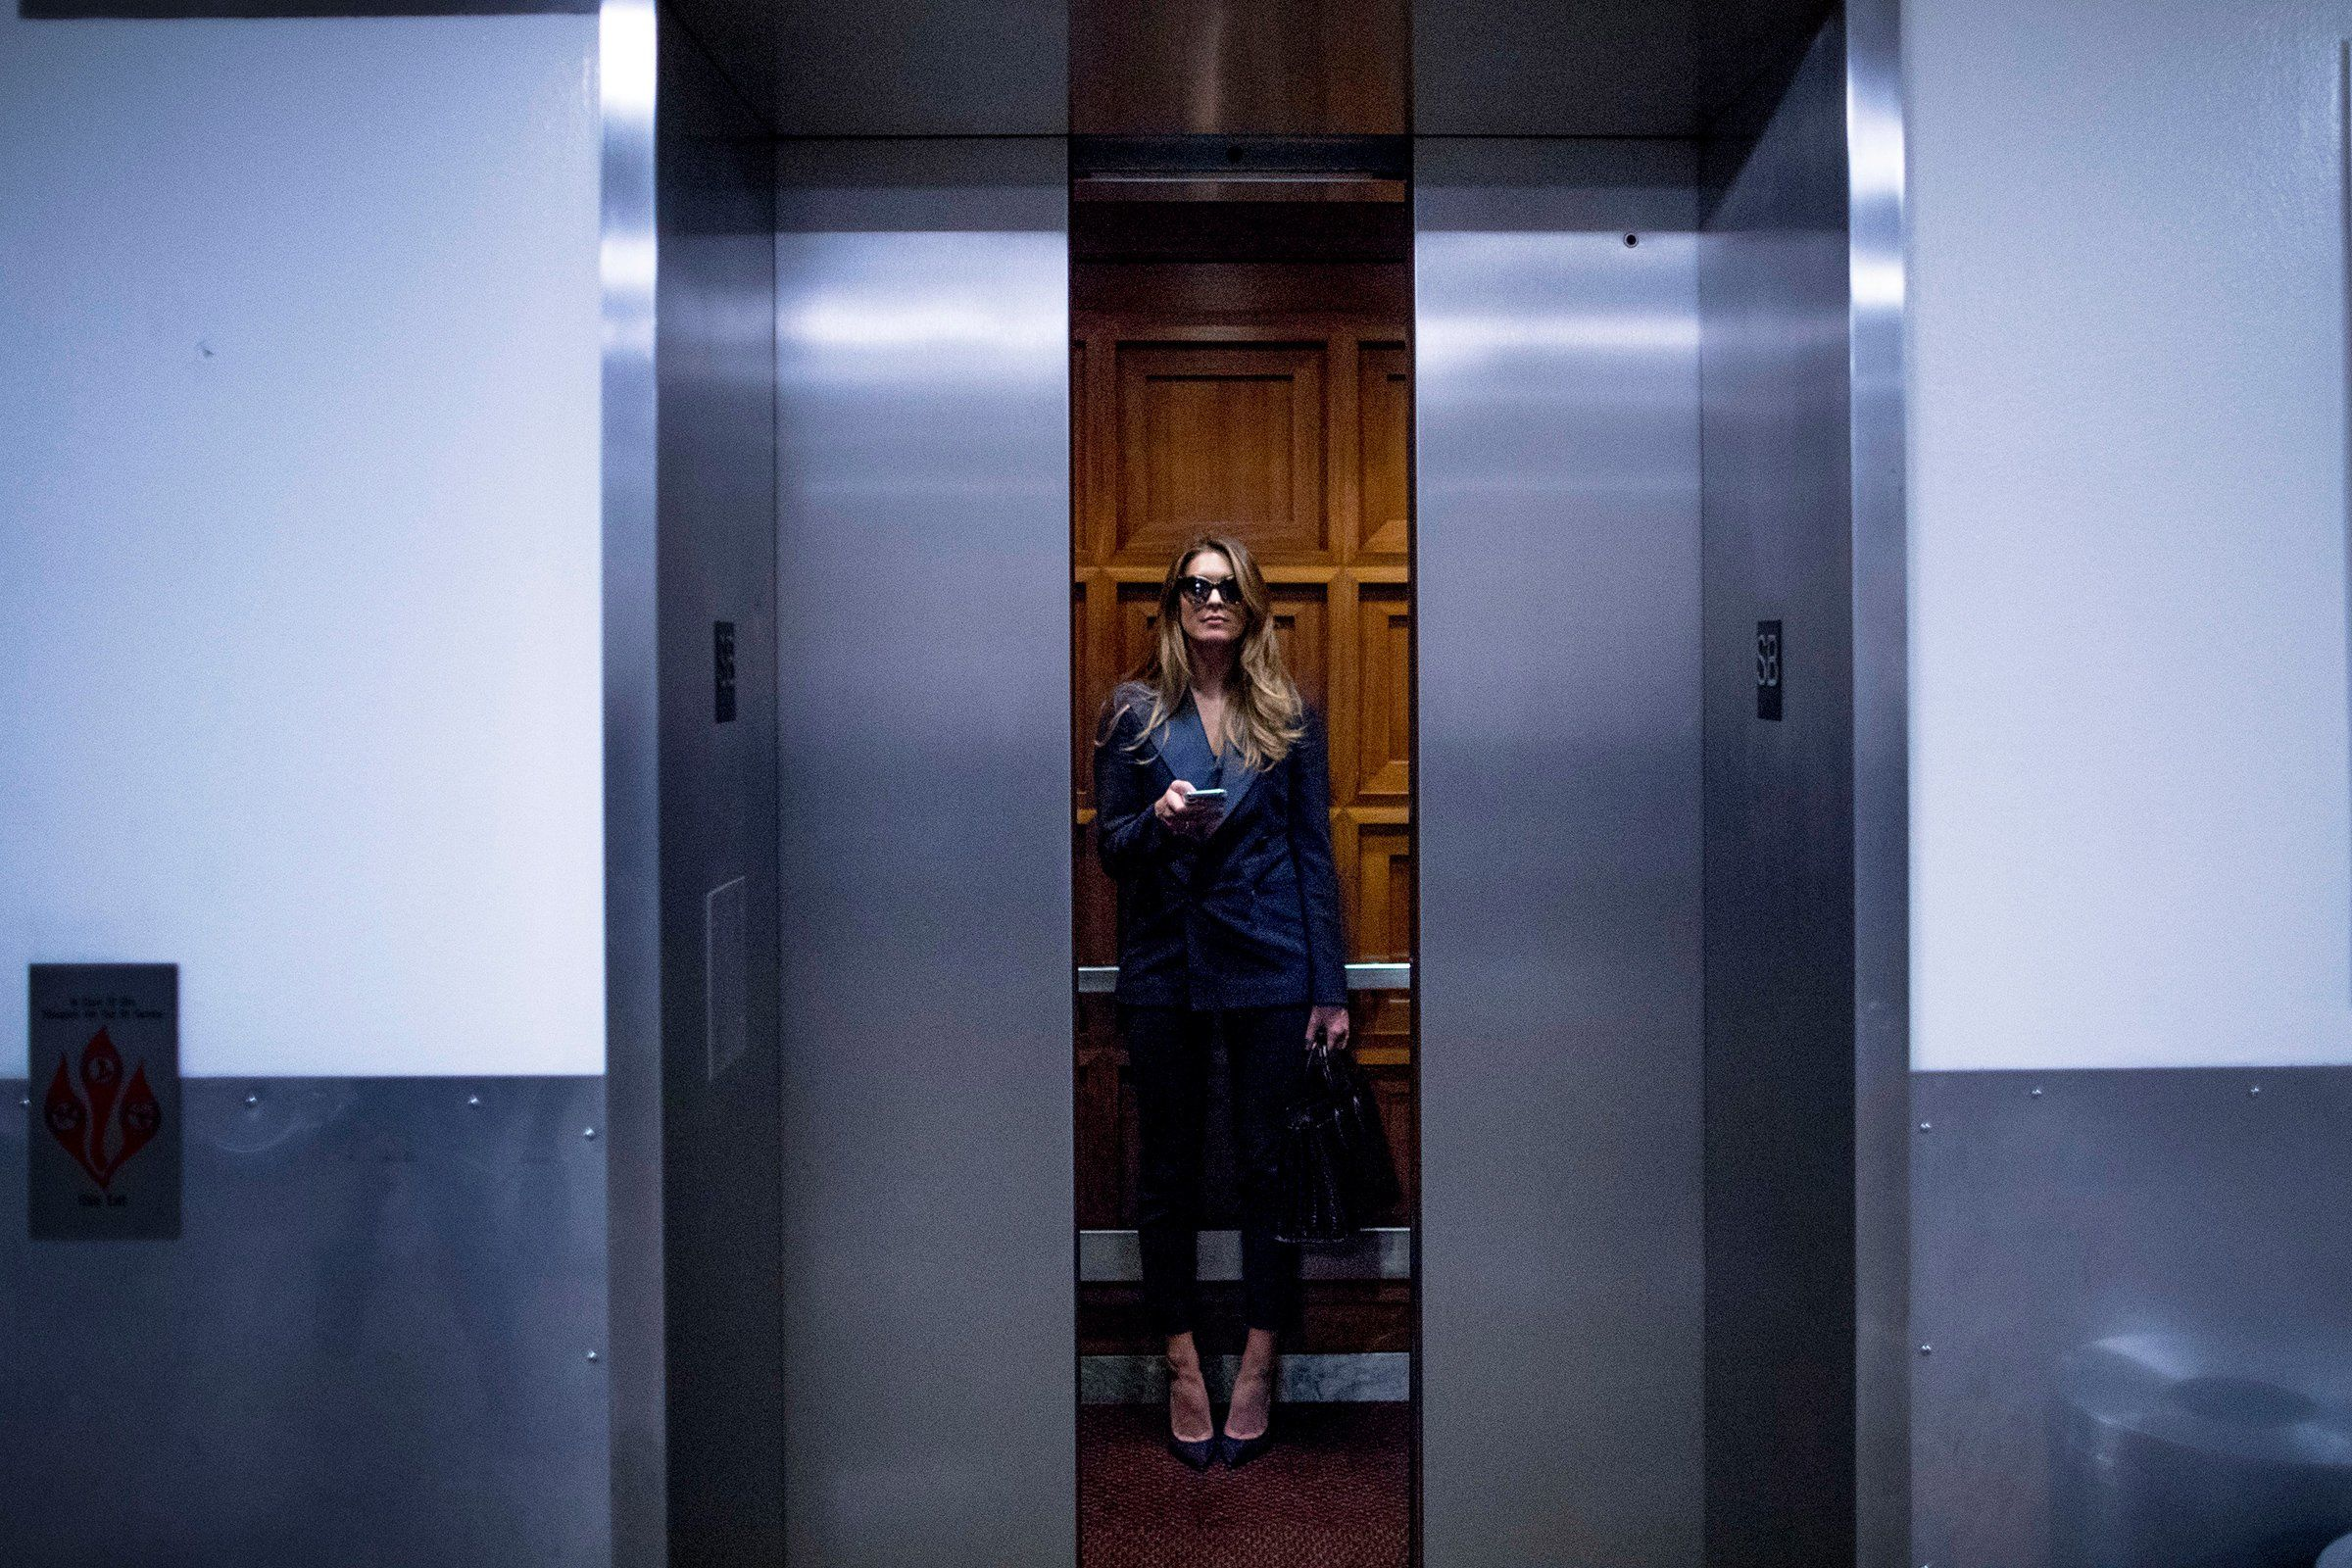 Hope Hicks, the former White House communications director, leaves following a closed-door interview with the House Judiciary Committee in Washington on June 19.